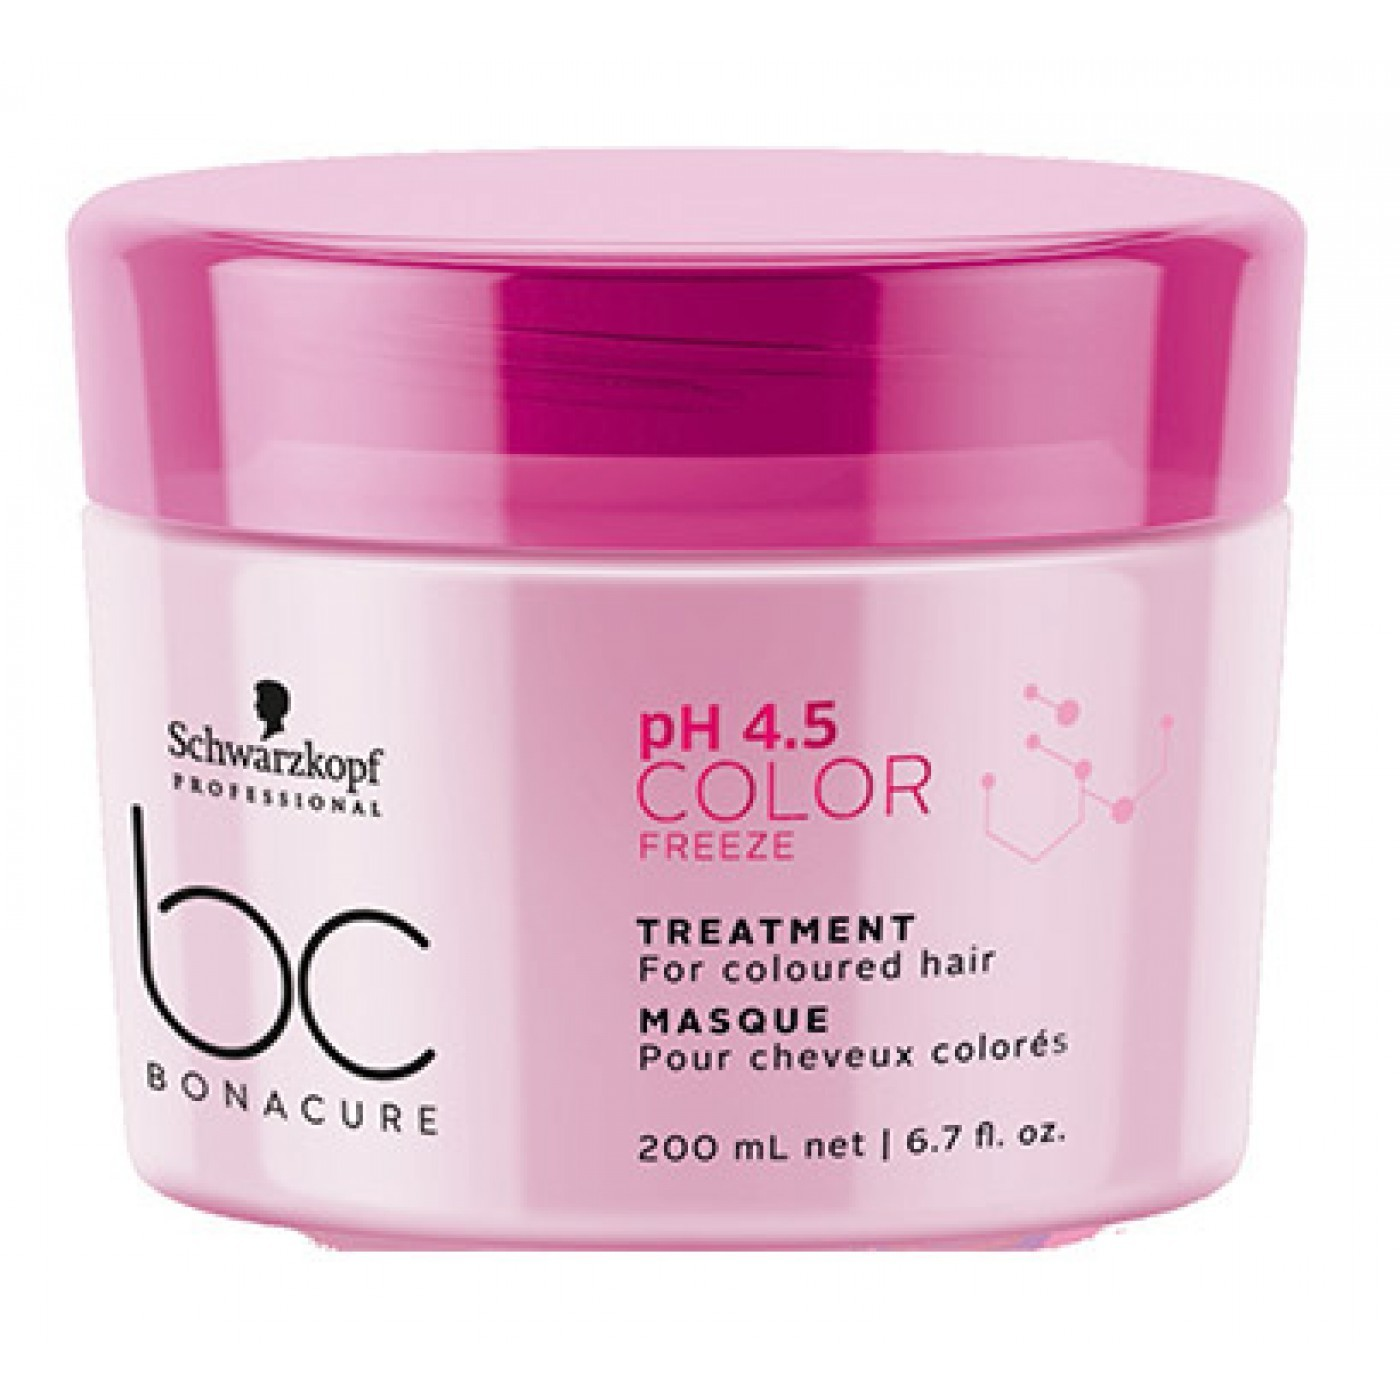 Schwarzkopf Professional Bonacure pH 4.5 Color Freeze Treatment - 200ml